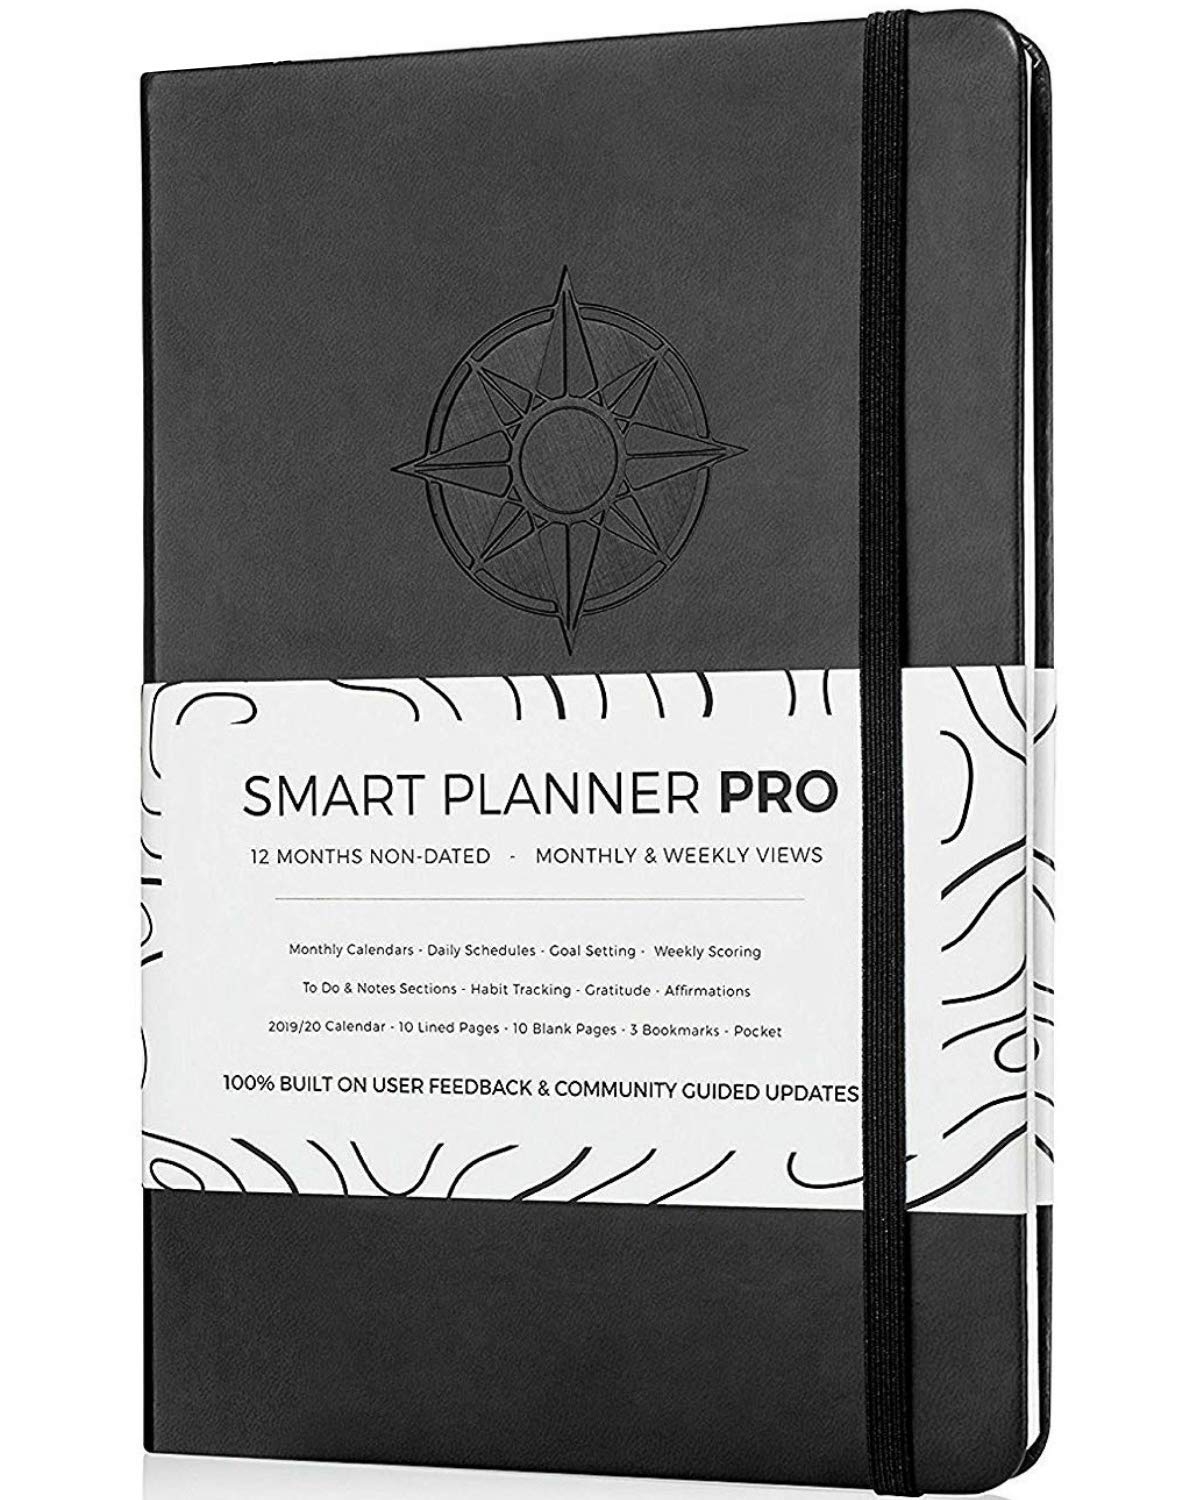 Planner 2019-2020 - Tested & Proven to Achieve Goals & Increase Productivity, Time Management & Happiness - Daily Weekly Monthly Planner with Gratitude Journal, Hardcover, Undated (Black)